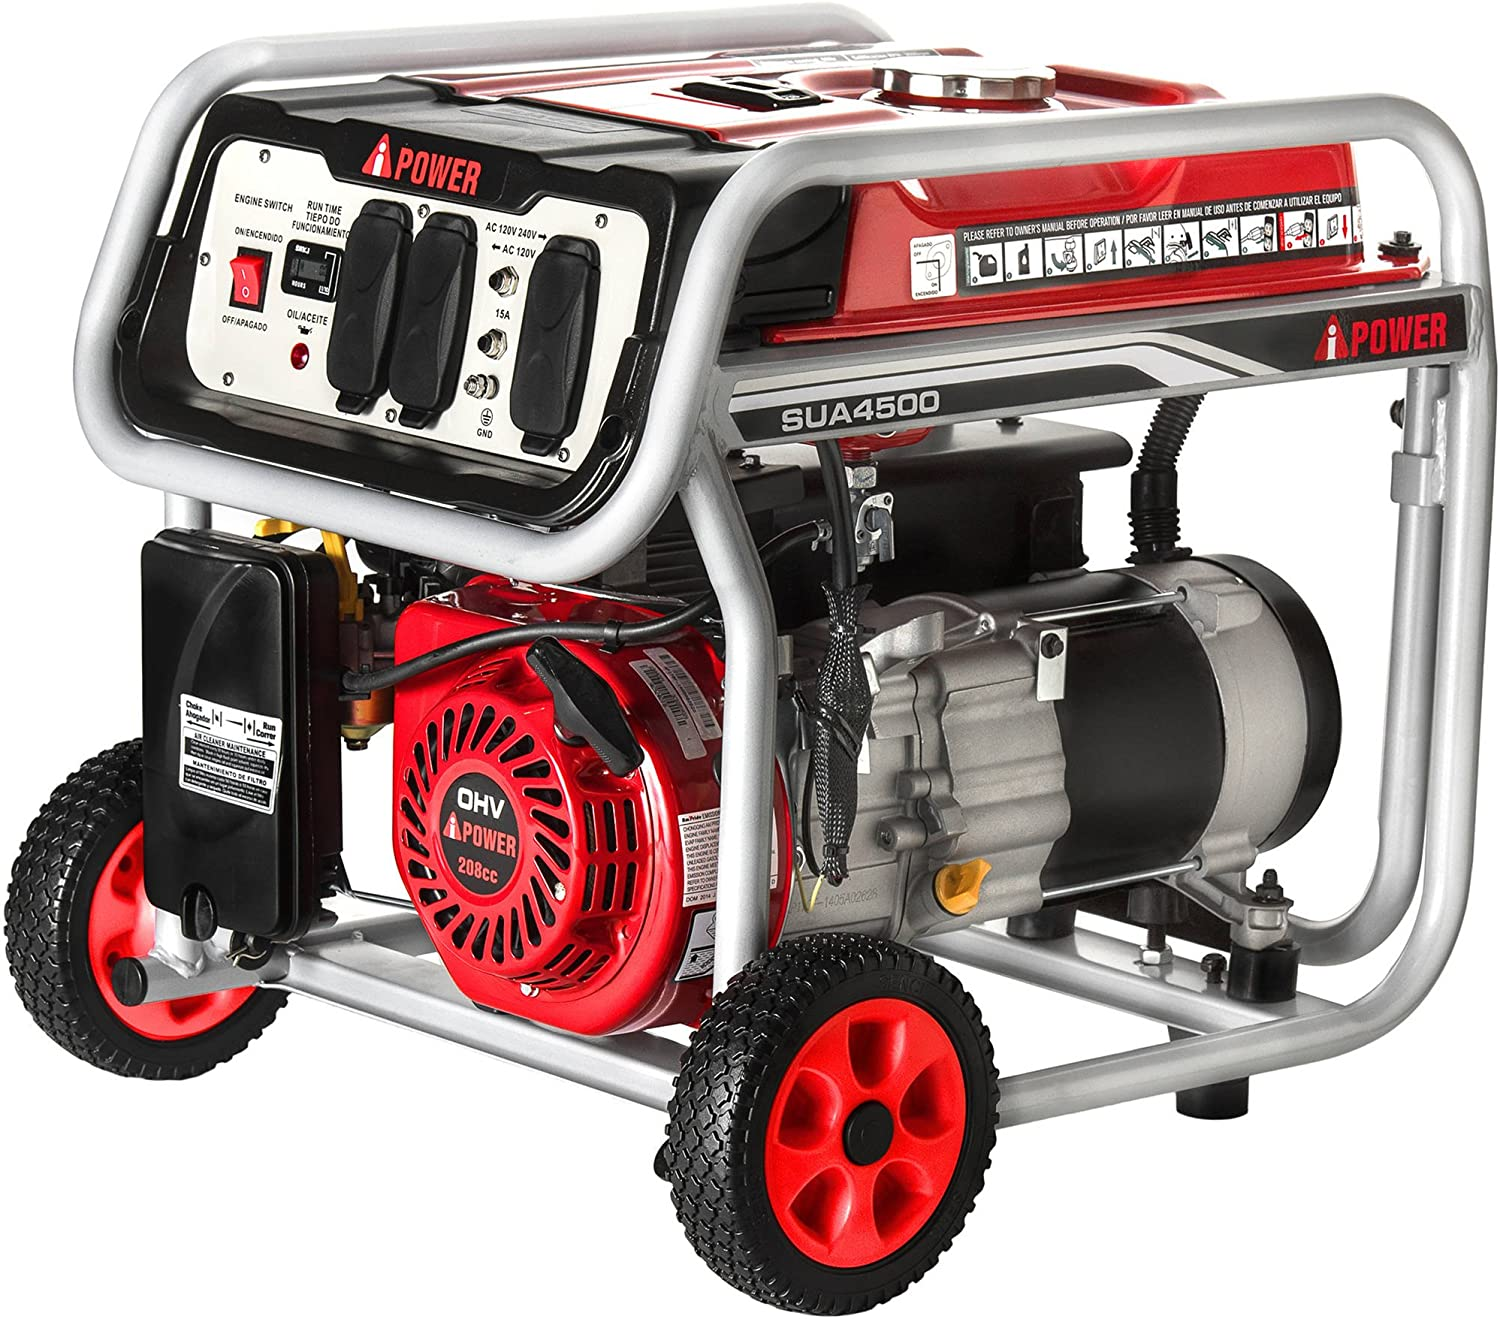 A-iPower SUA4500 4500 Watt Portable Generator Gas Powered Wheel Kit Included, Rated Watt 3500 Running, EPA CARB complied